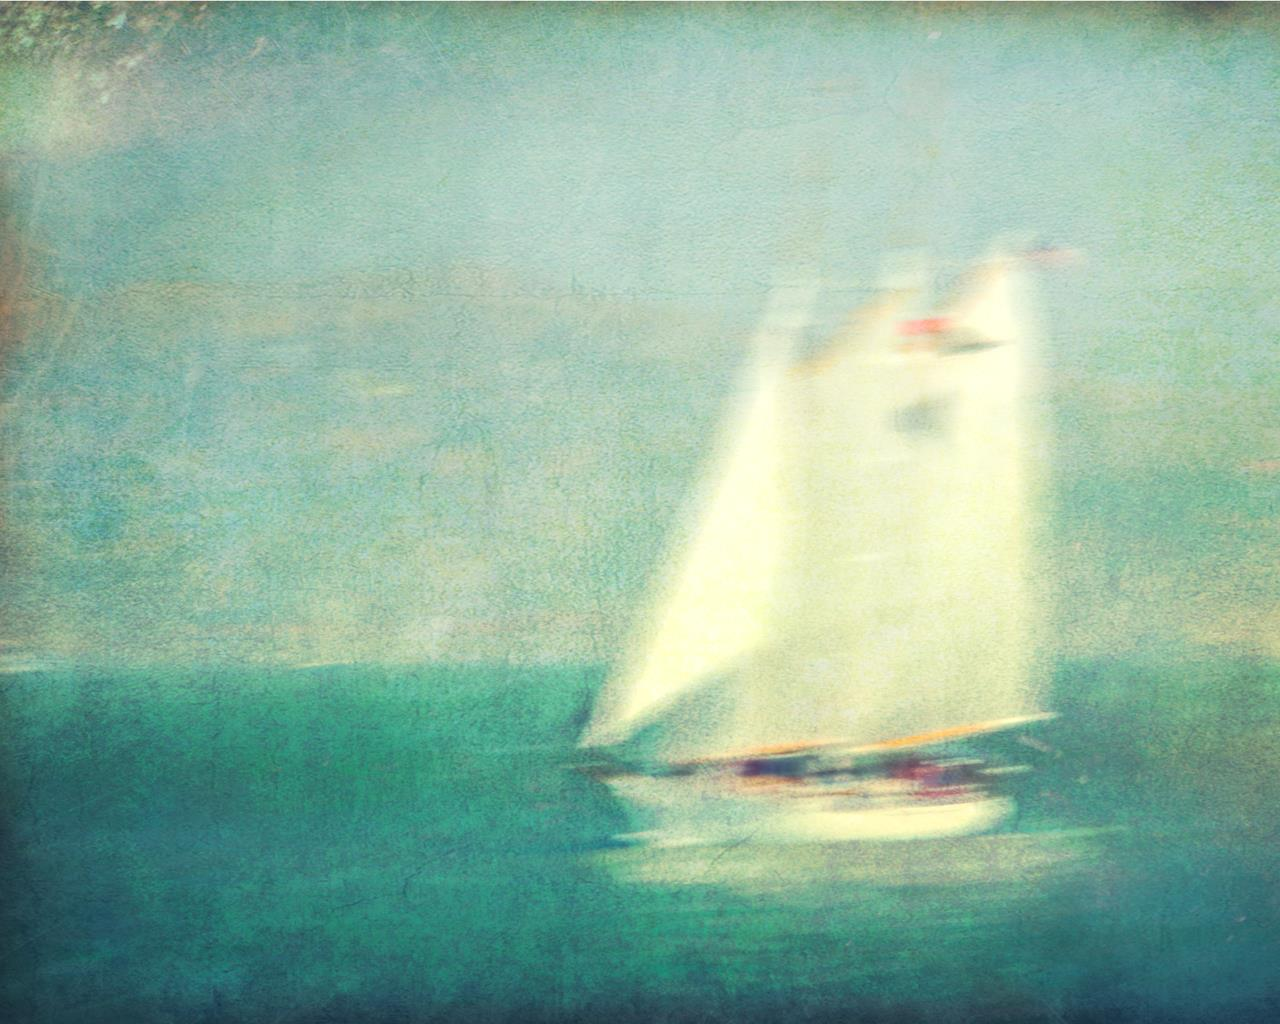 Sailing on the Bay, © Bill Hewitt, Santa Rosa, CA, Santa Fe Photographic — Summer vacation